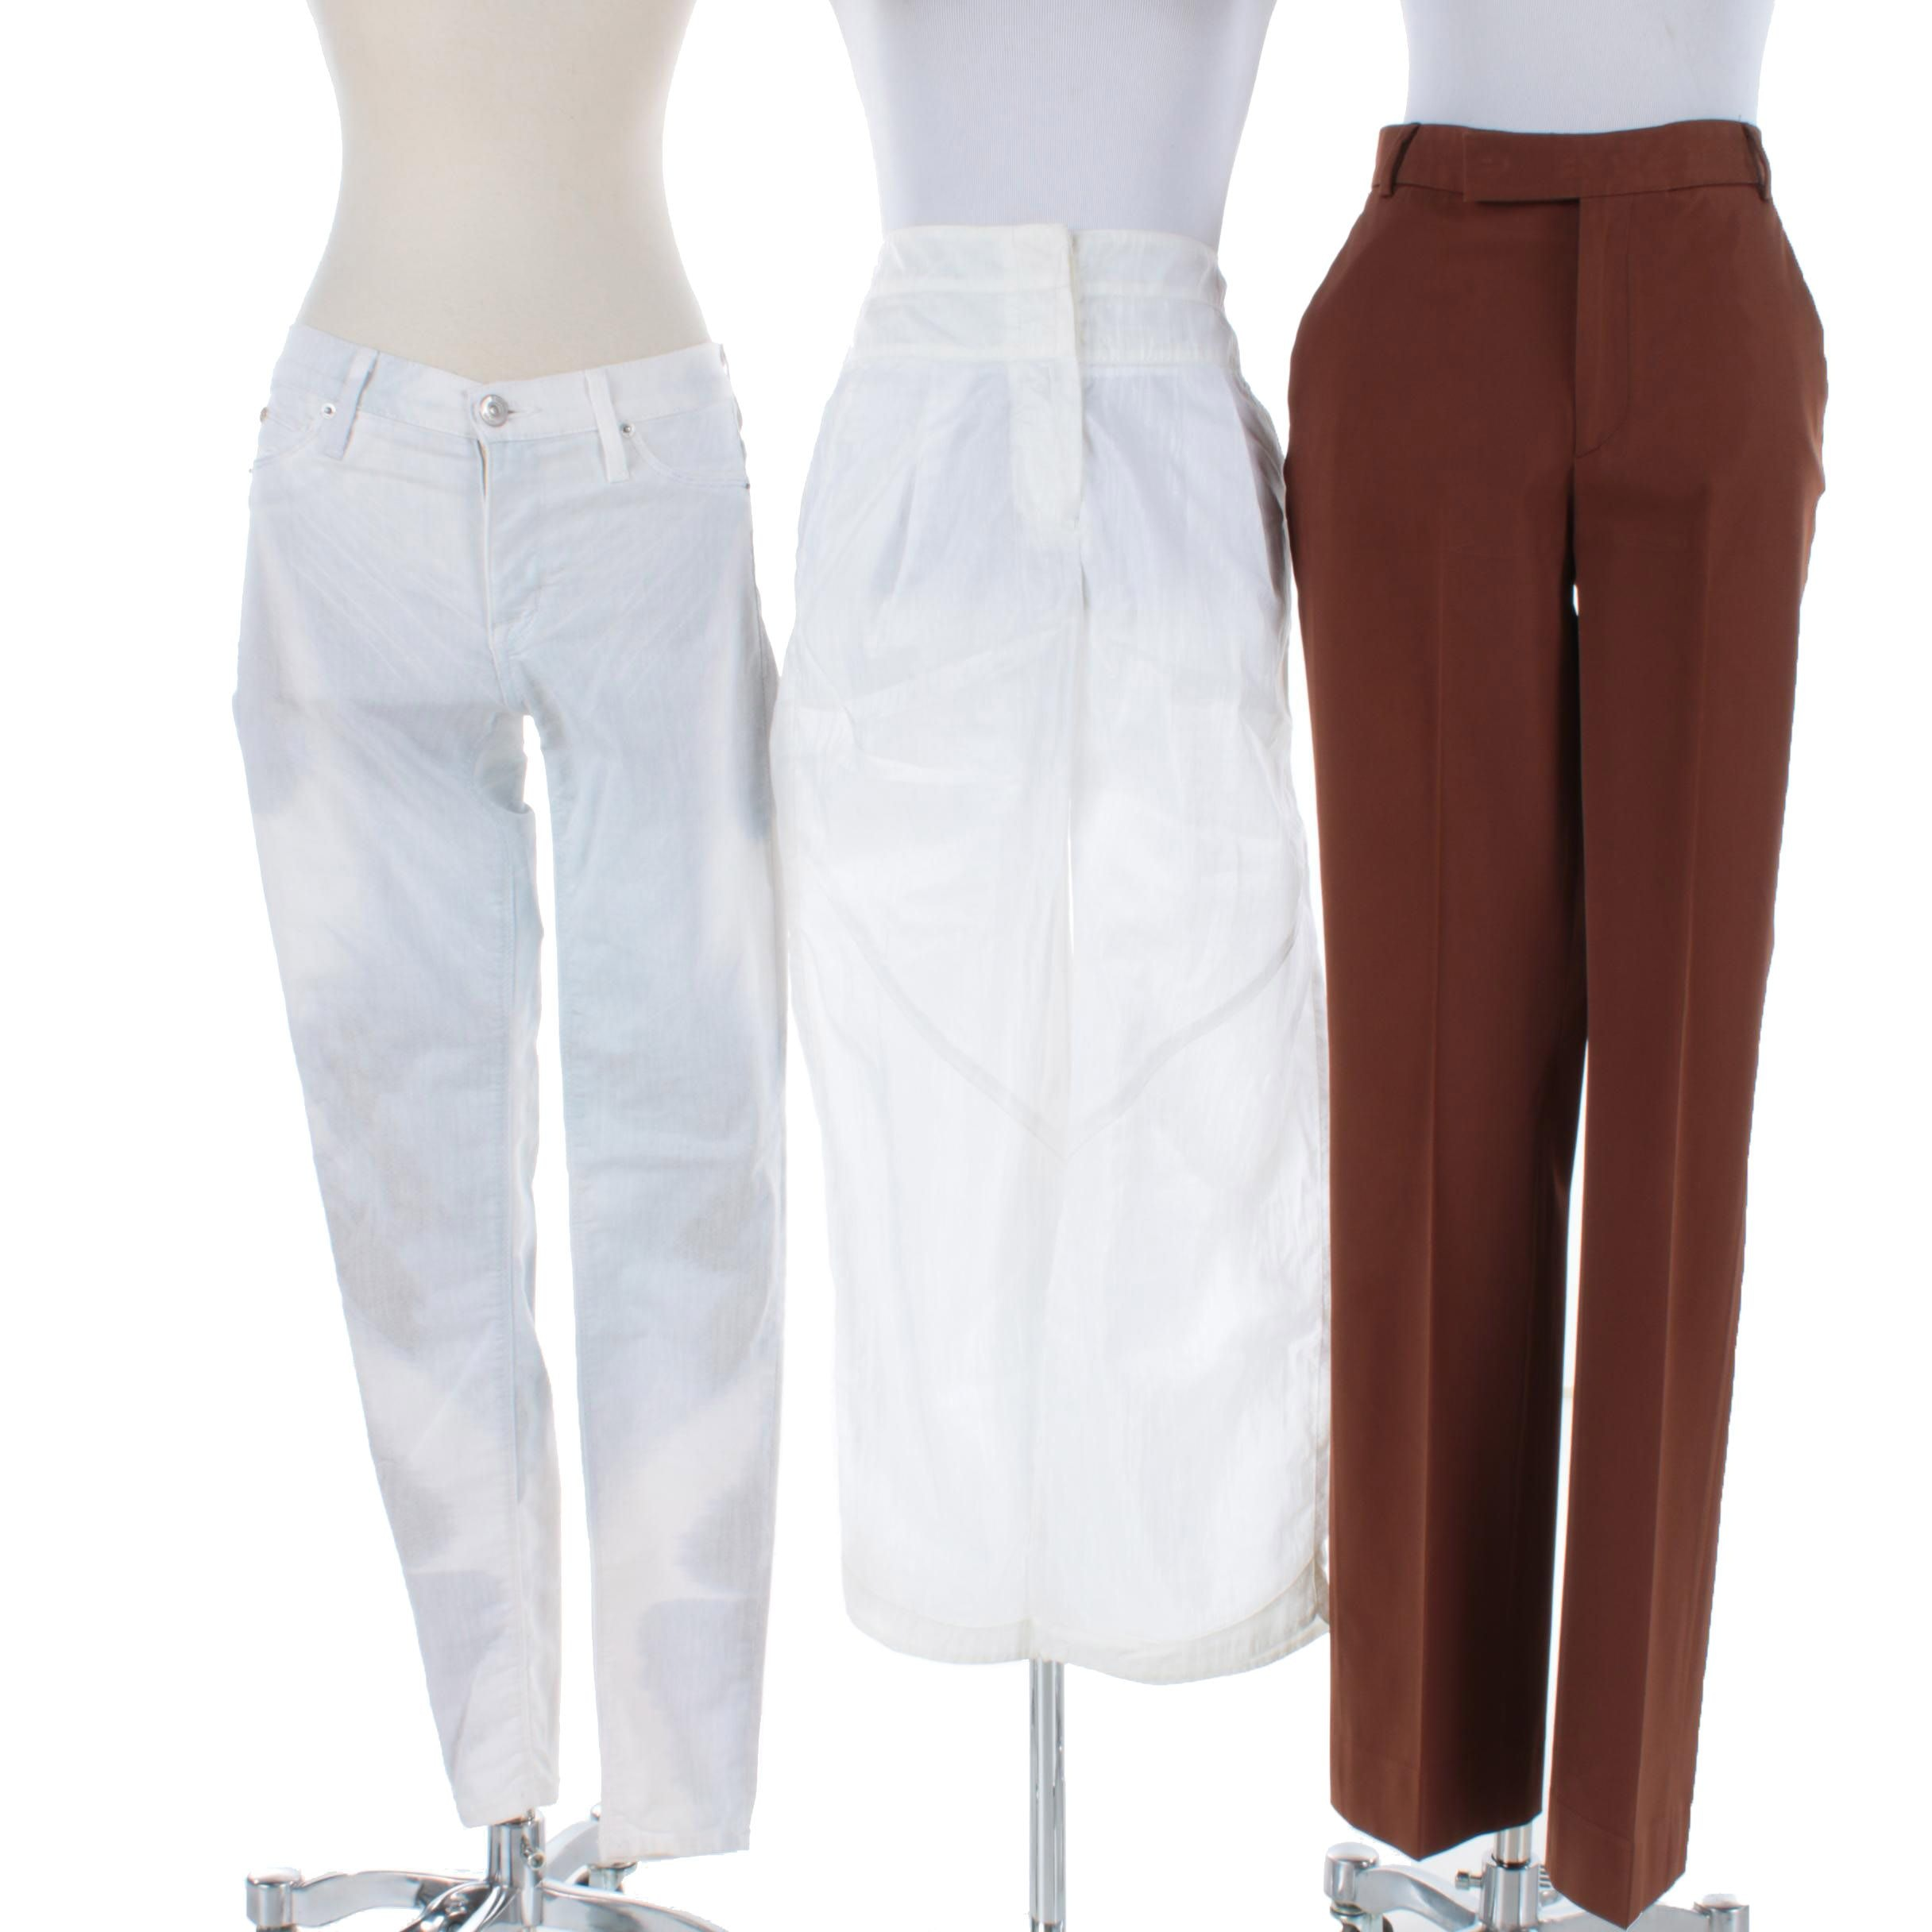 Women's Pants Including AJ Armani Jeans and Hudson